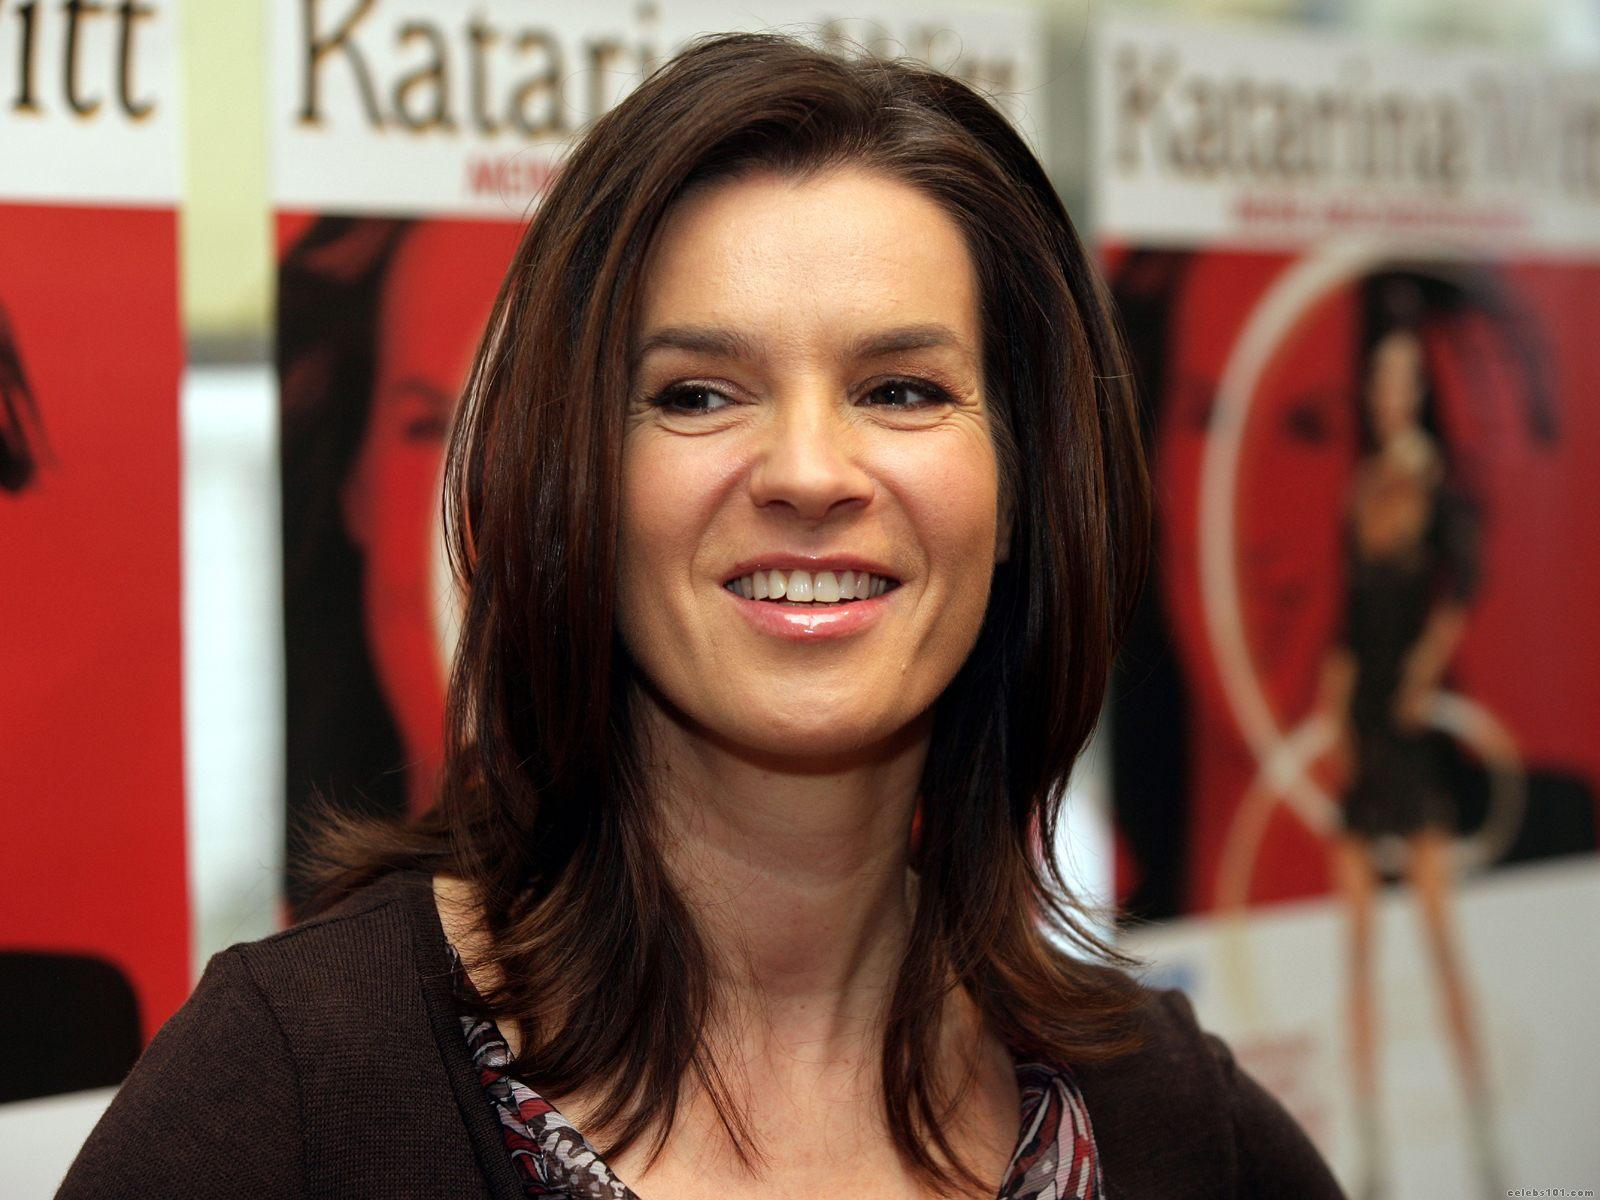 Katarina Witt High quality wall...